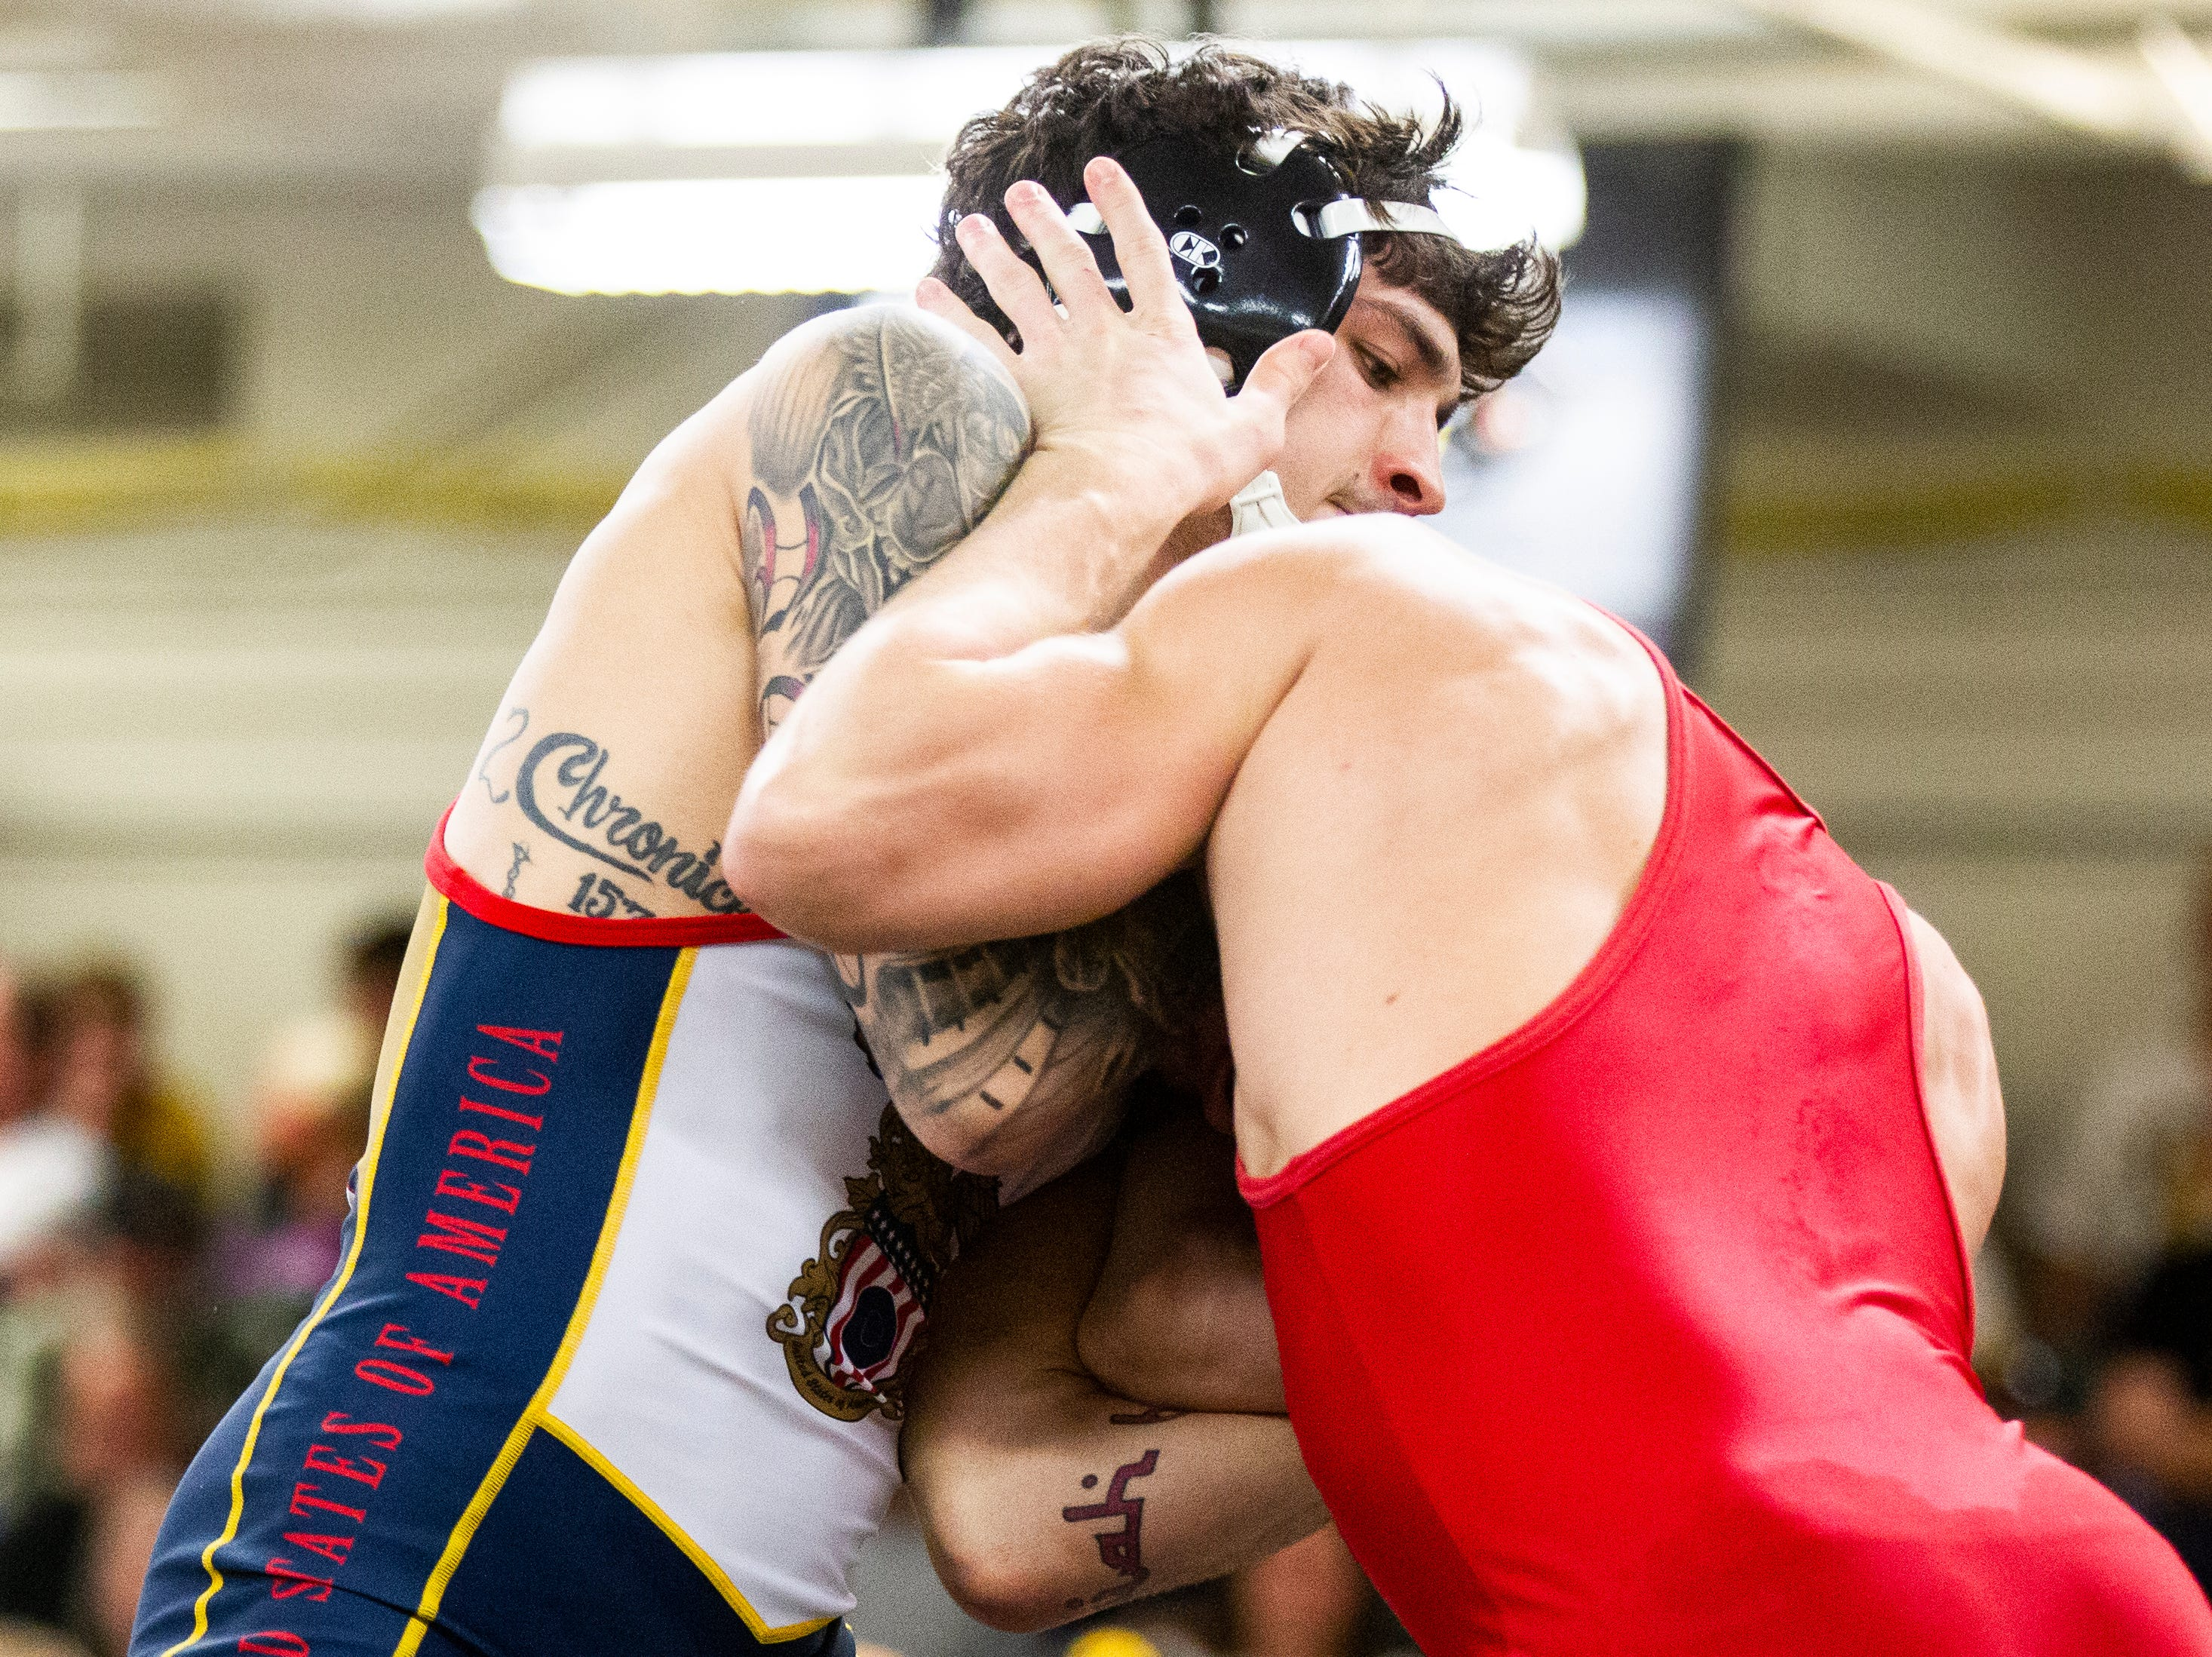 Iowa's Vince Turk (left) wrestles Max Murin at 141 during the wrestle-offs on Friday, Nov. 2, 2018, inside the Dan Gable Wrestling Complex at Carver-Hawkeye Arena in Iowa City.